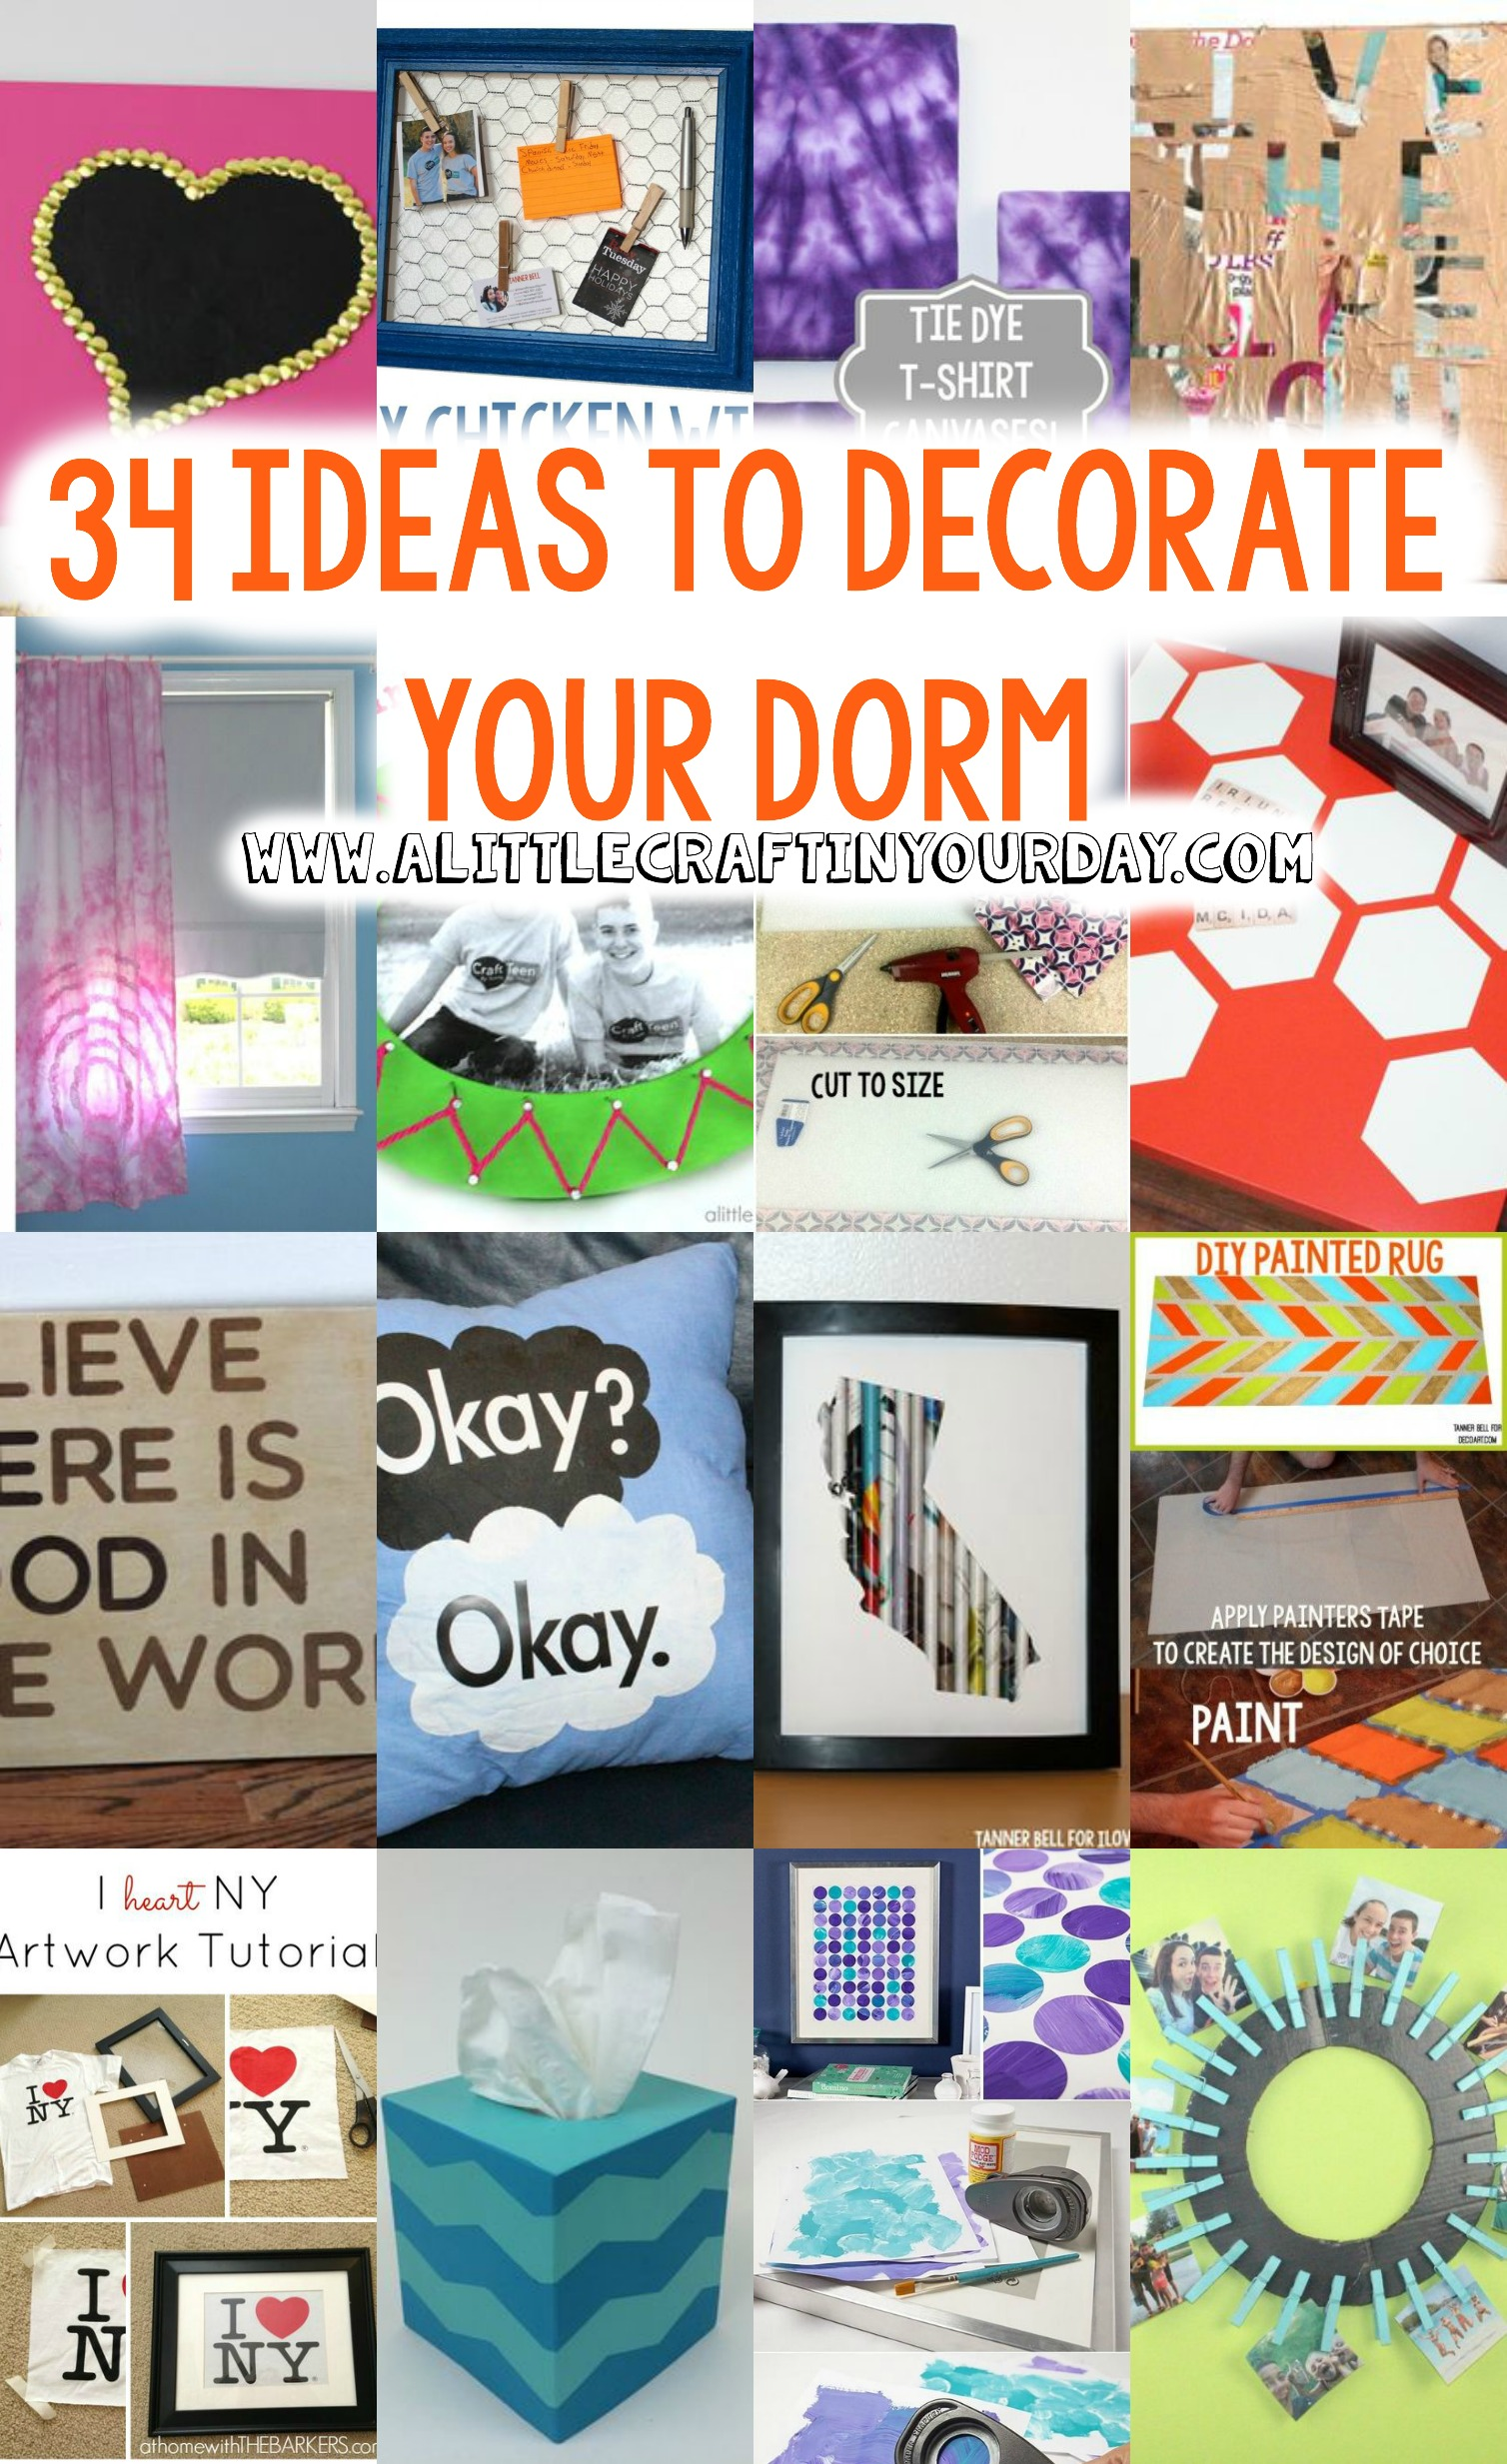 Dorm Decor ideas  34 ideas to decorate your Dorm  A  ~ 191949_Dorm Room Craft Ideas